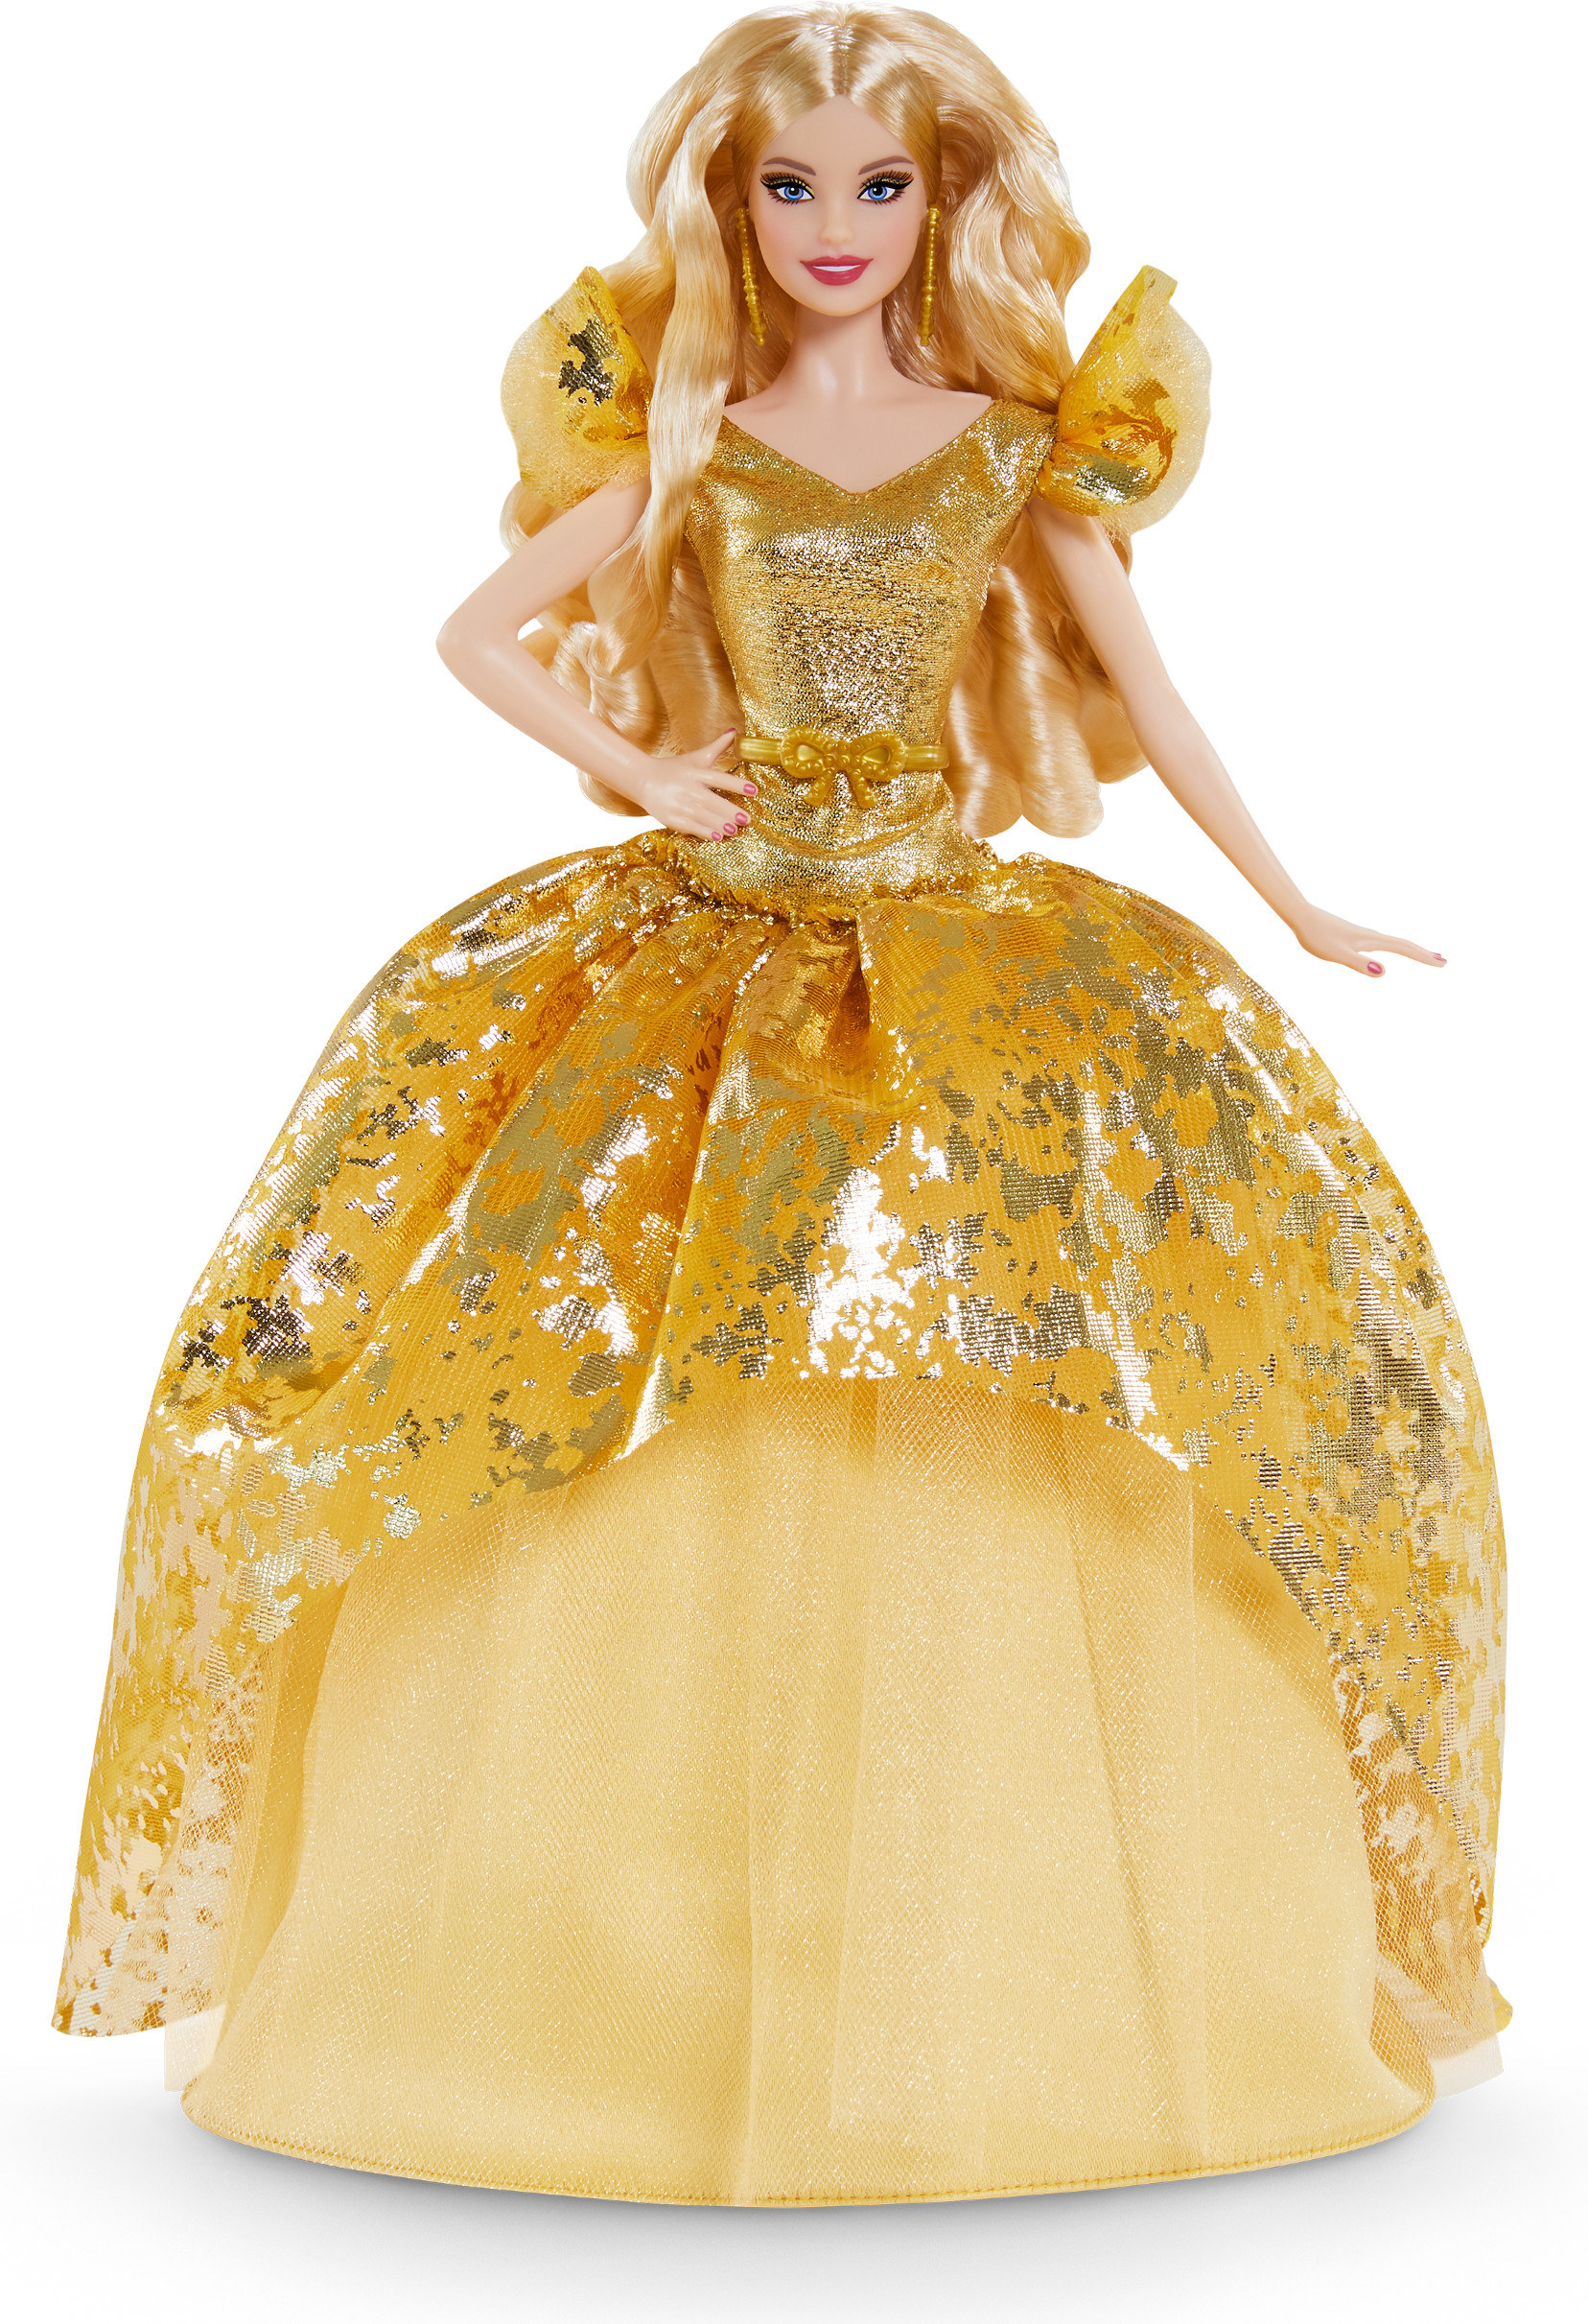 The blonde doll in a gold gown